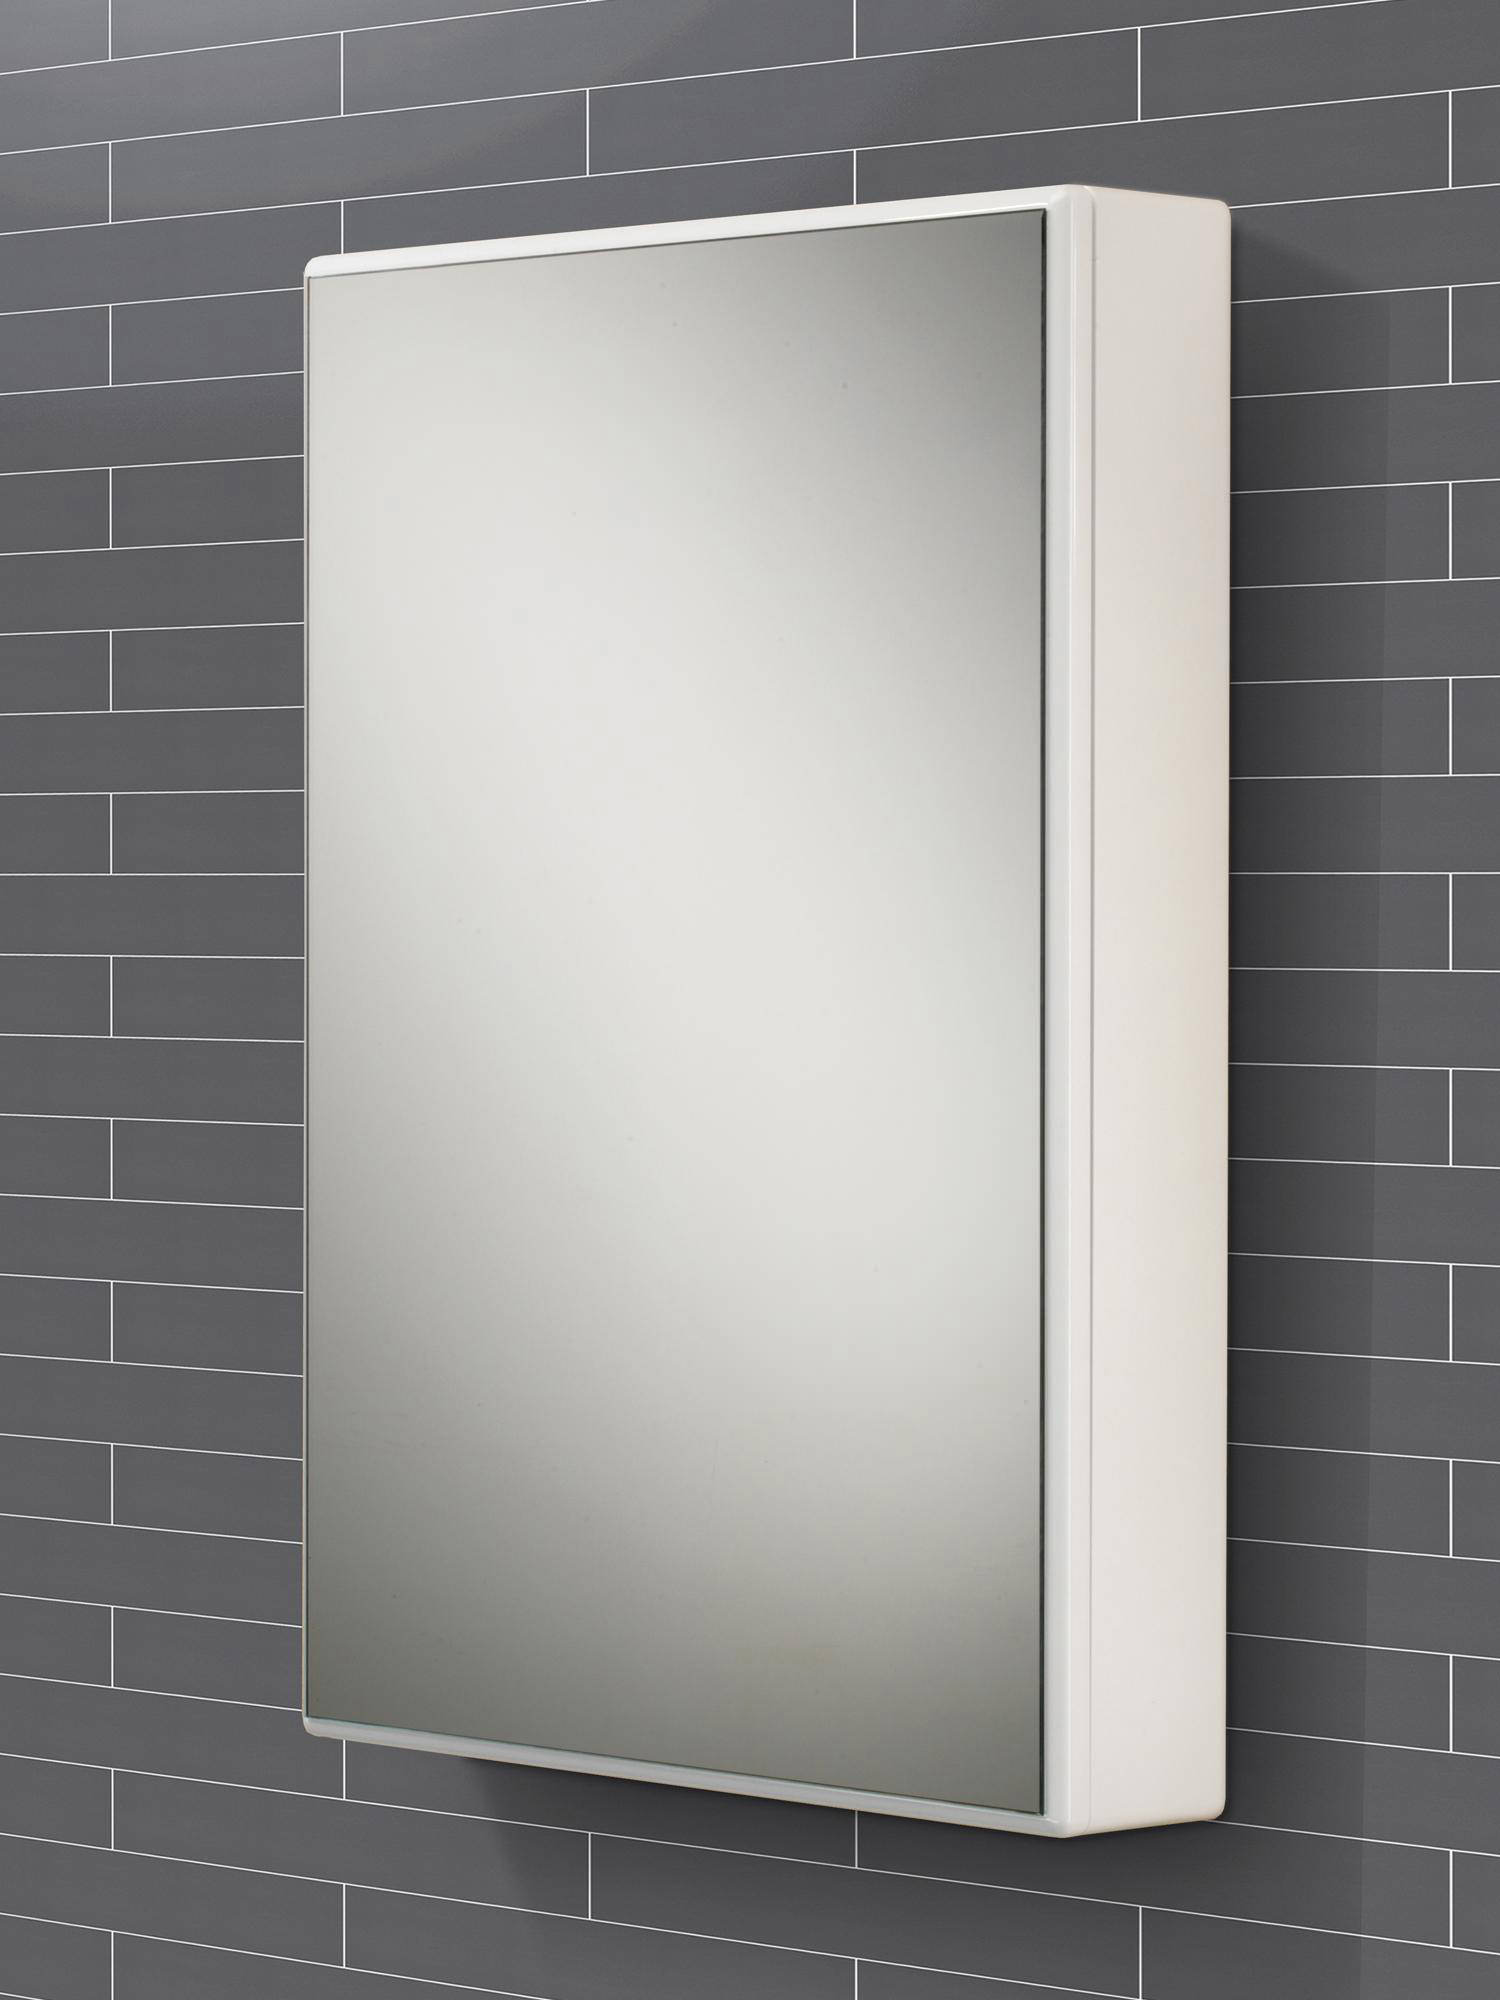 Mirrored Bathroom Cupboard Hib Tulsa Slimline Single Door Mirrored Cabinet 500 X